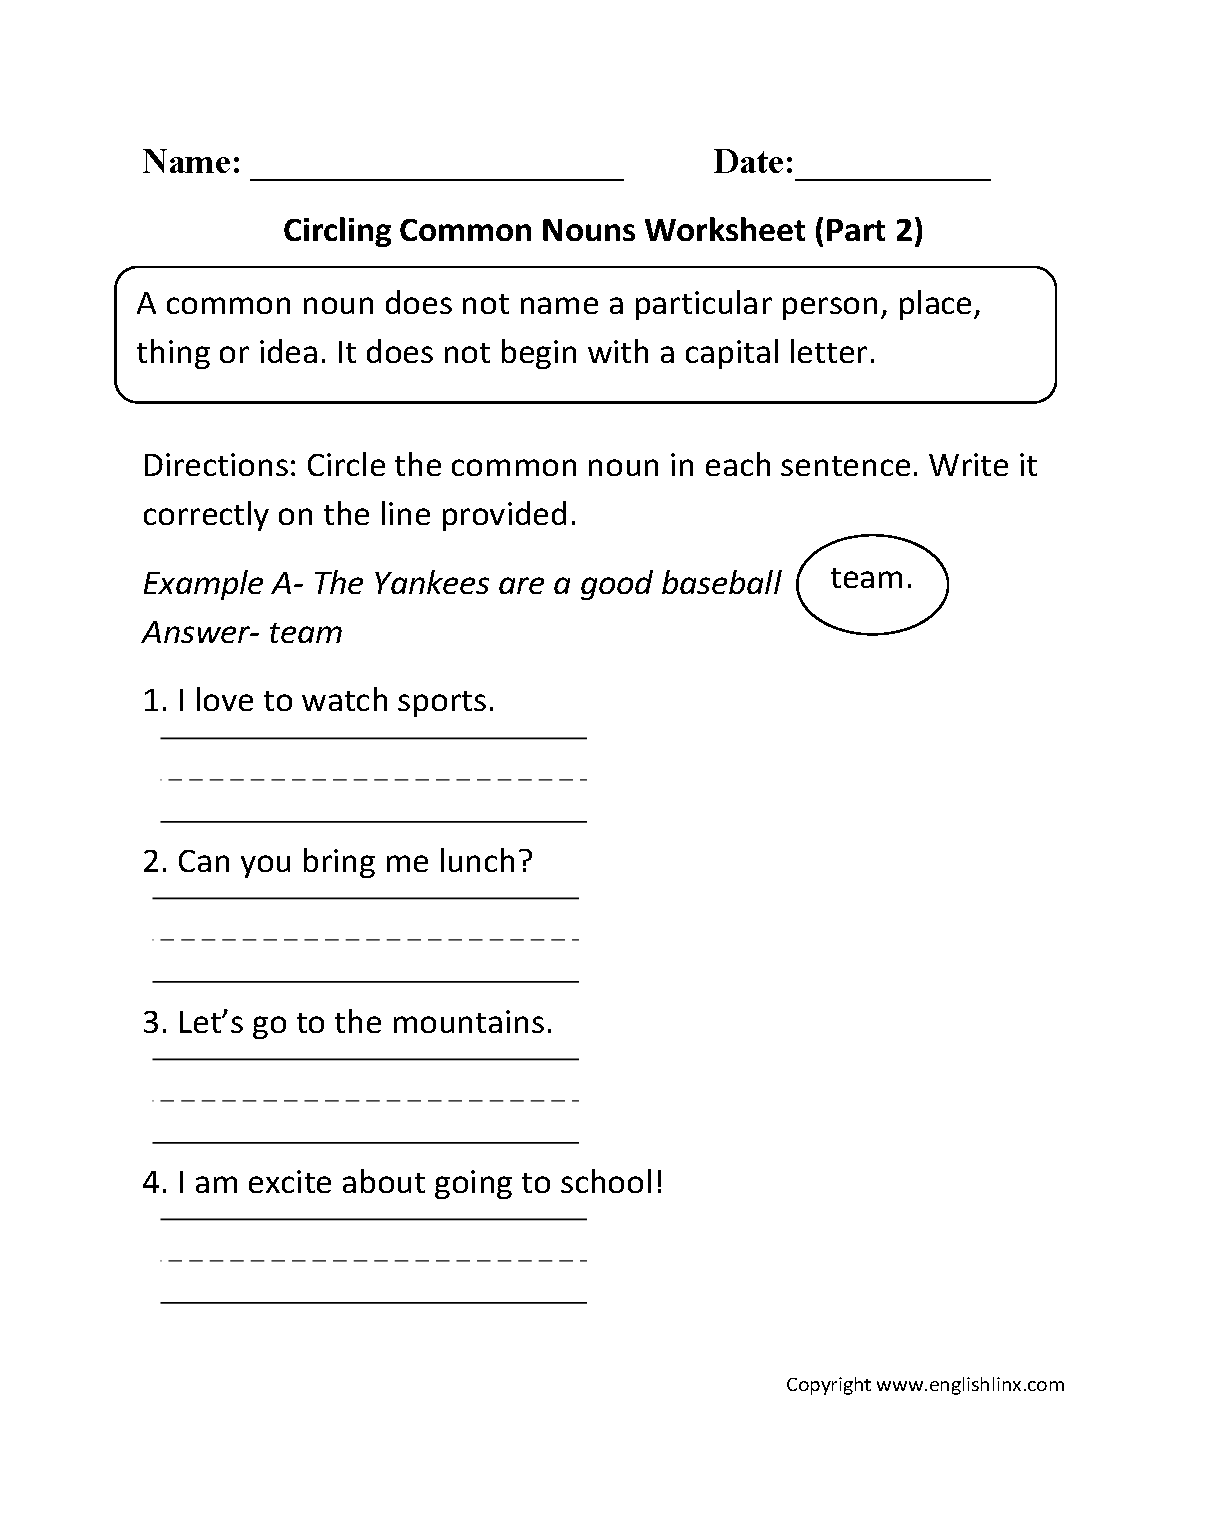 Circling Common Nouns Worksheet Part 2